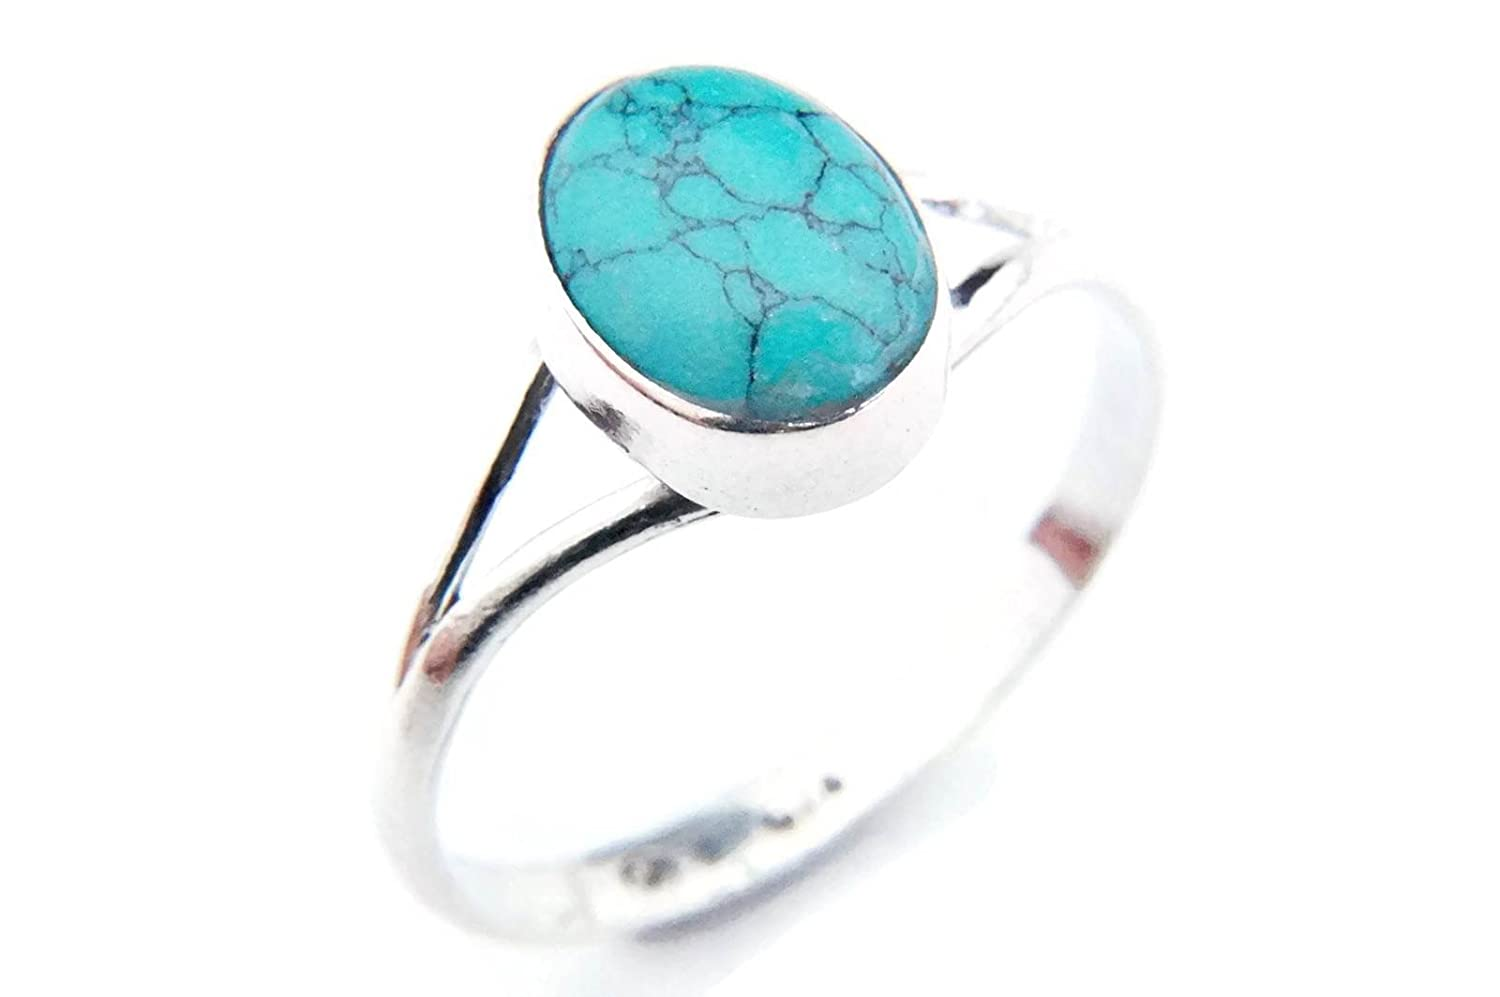 Bague argent 925 sterling avec turquoise x (MRI 92) mantraroma